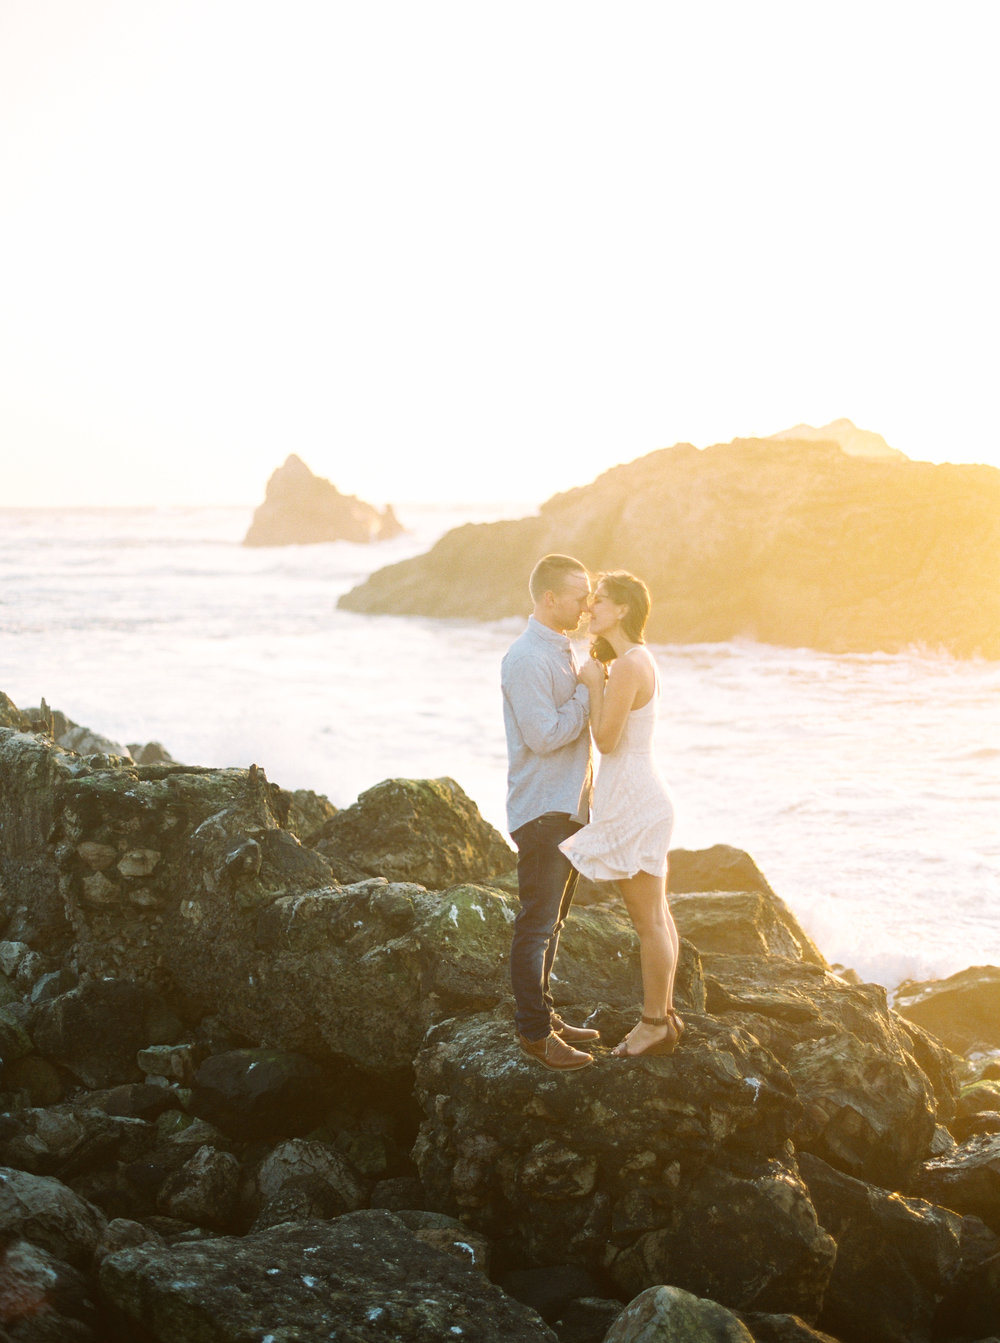 Sutro-baths-san-francisco-engagement-shoot-14.jpg